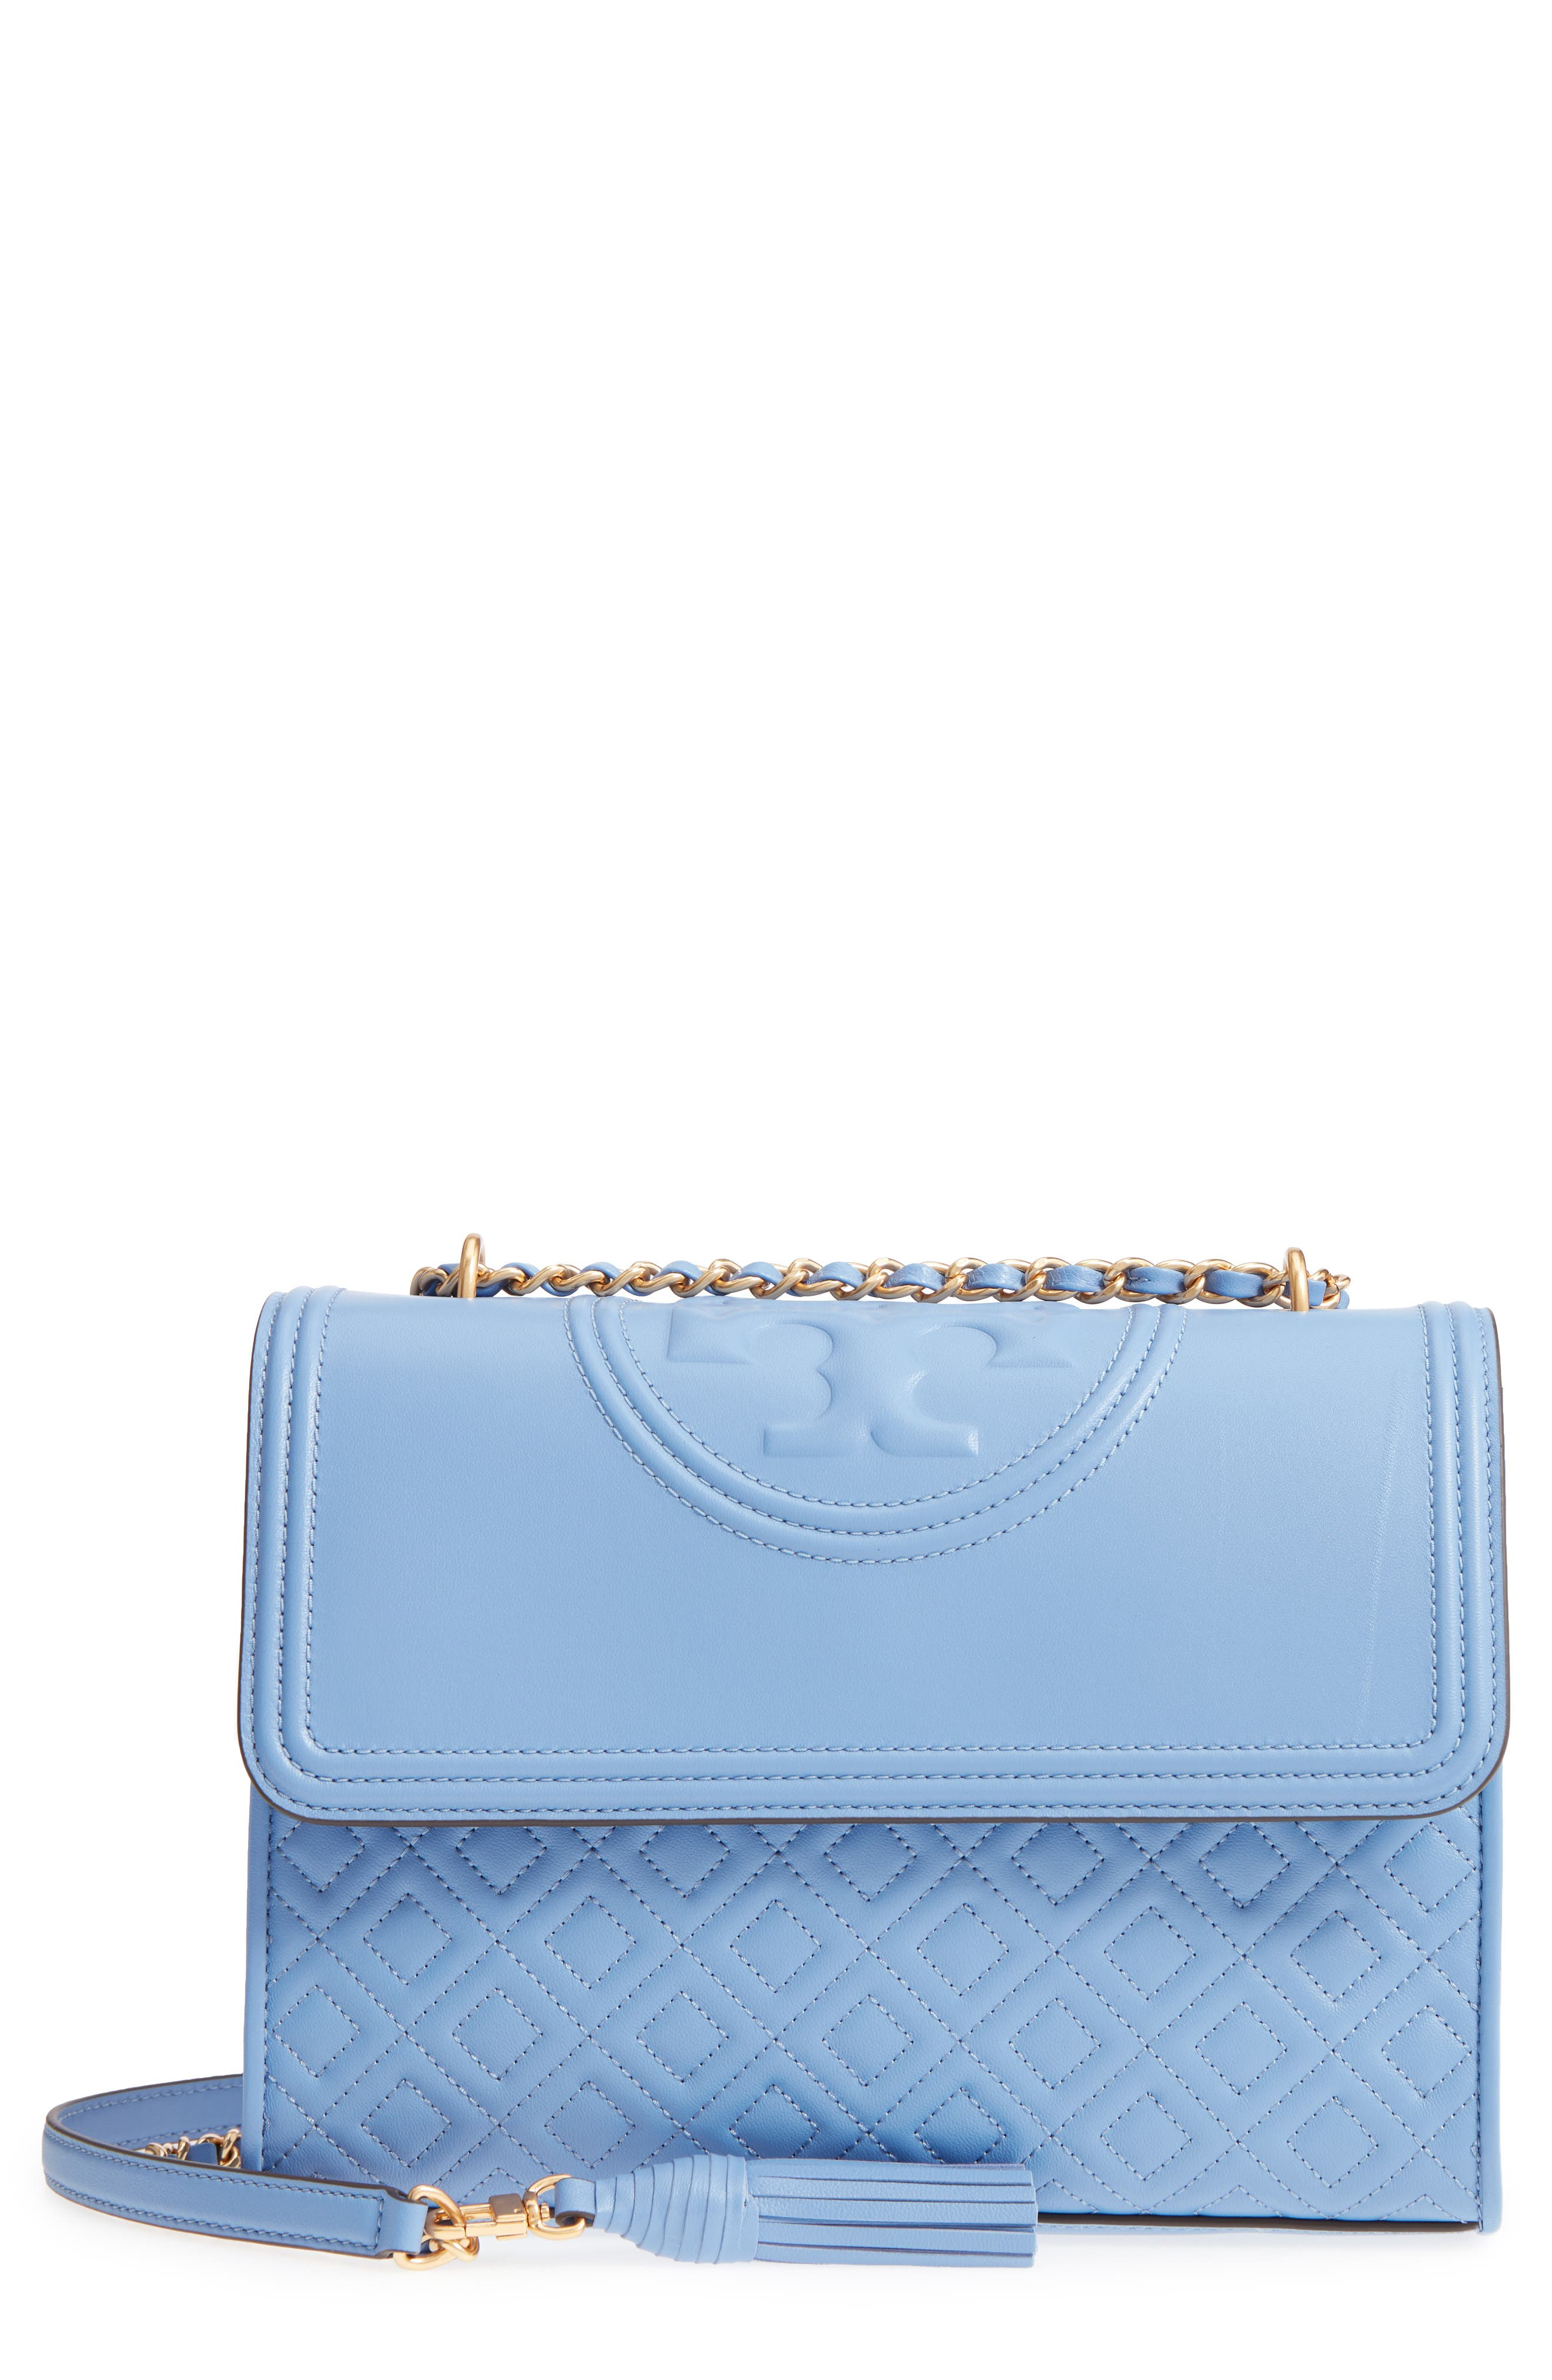 Alternate Image 1 Selected - Tory Burch Fleming Leather Convertible Shoulder Bag